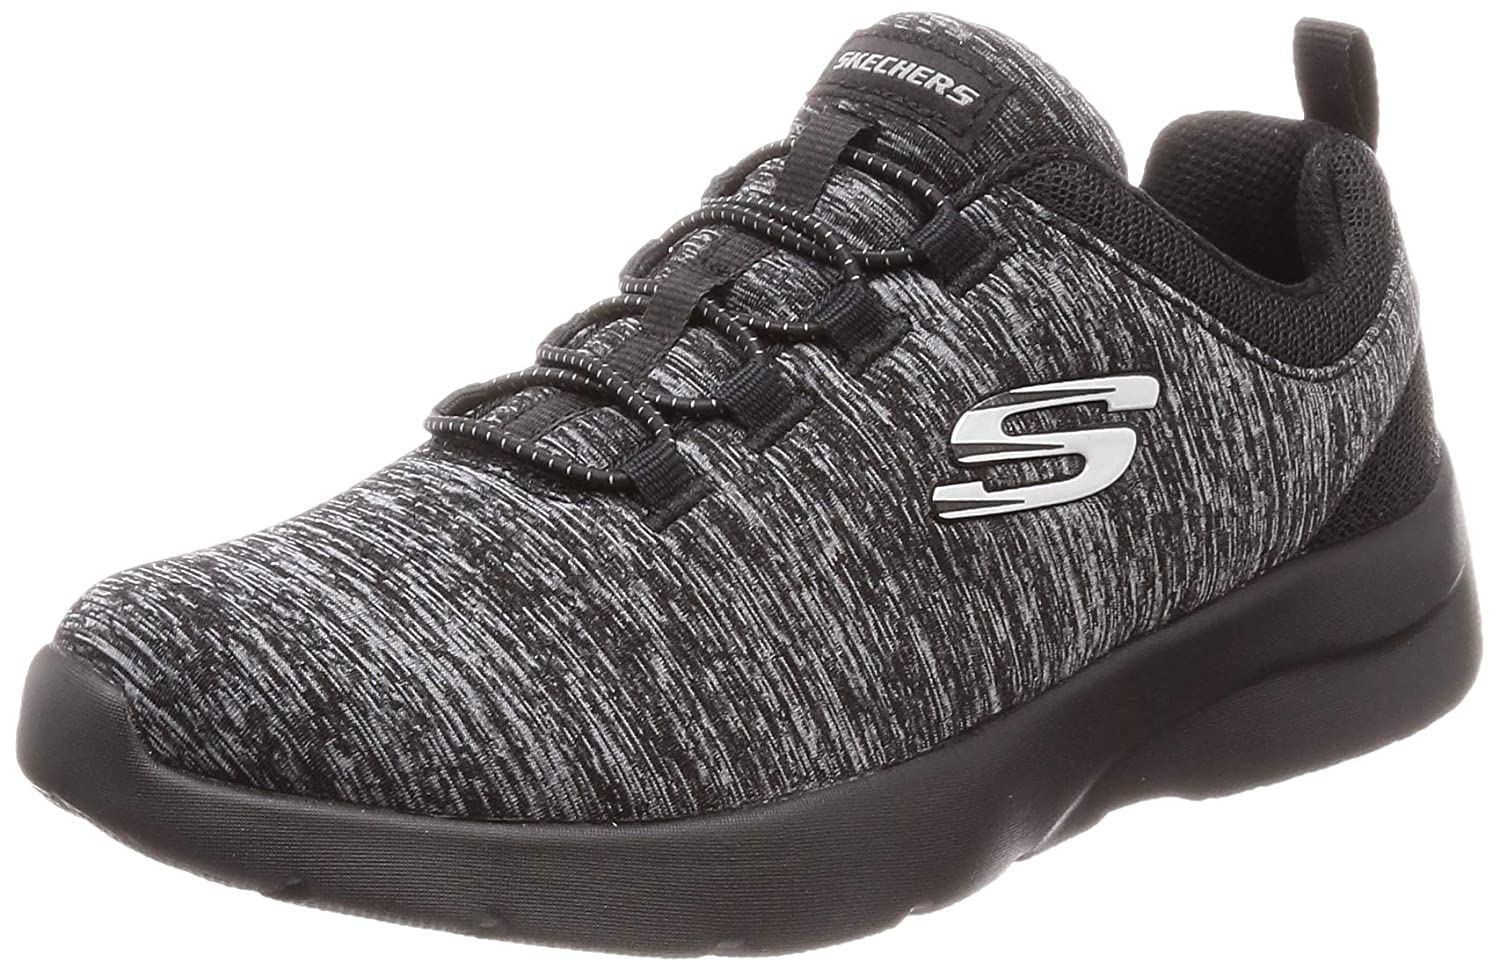 Skechers Dynamight 2.0- In a Flash- Zapatilla Casual para Mujer